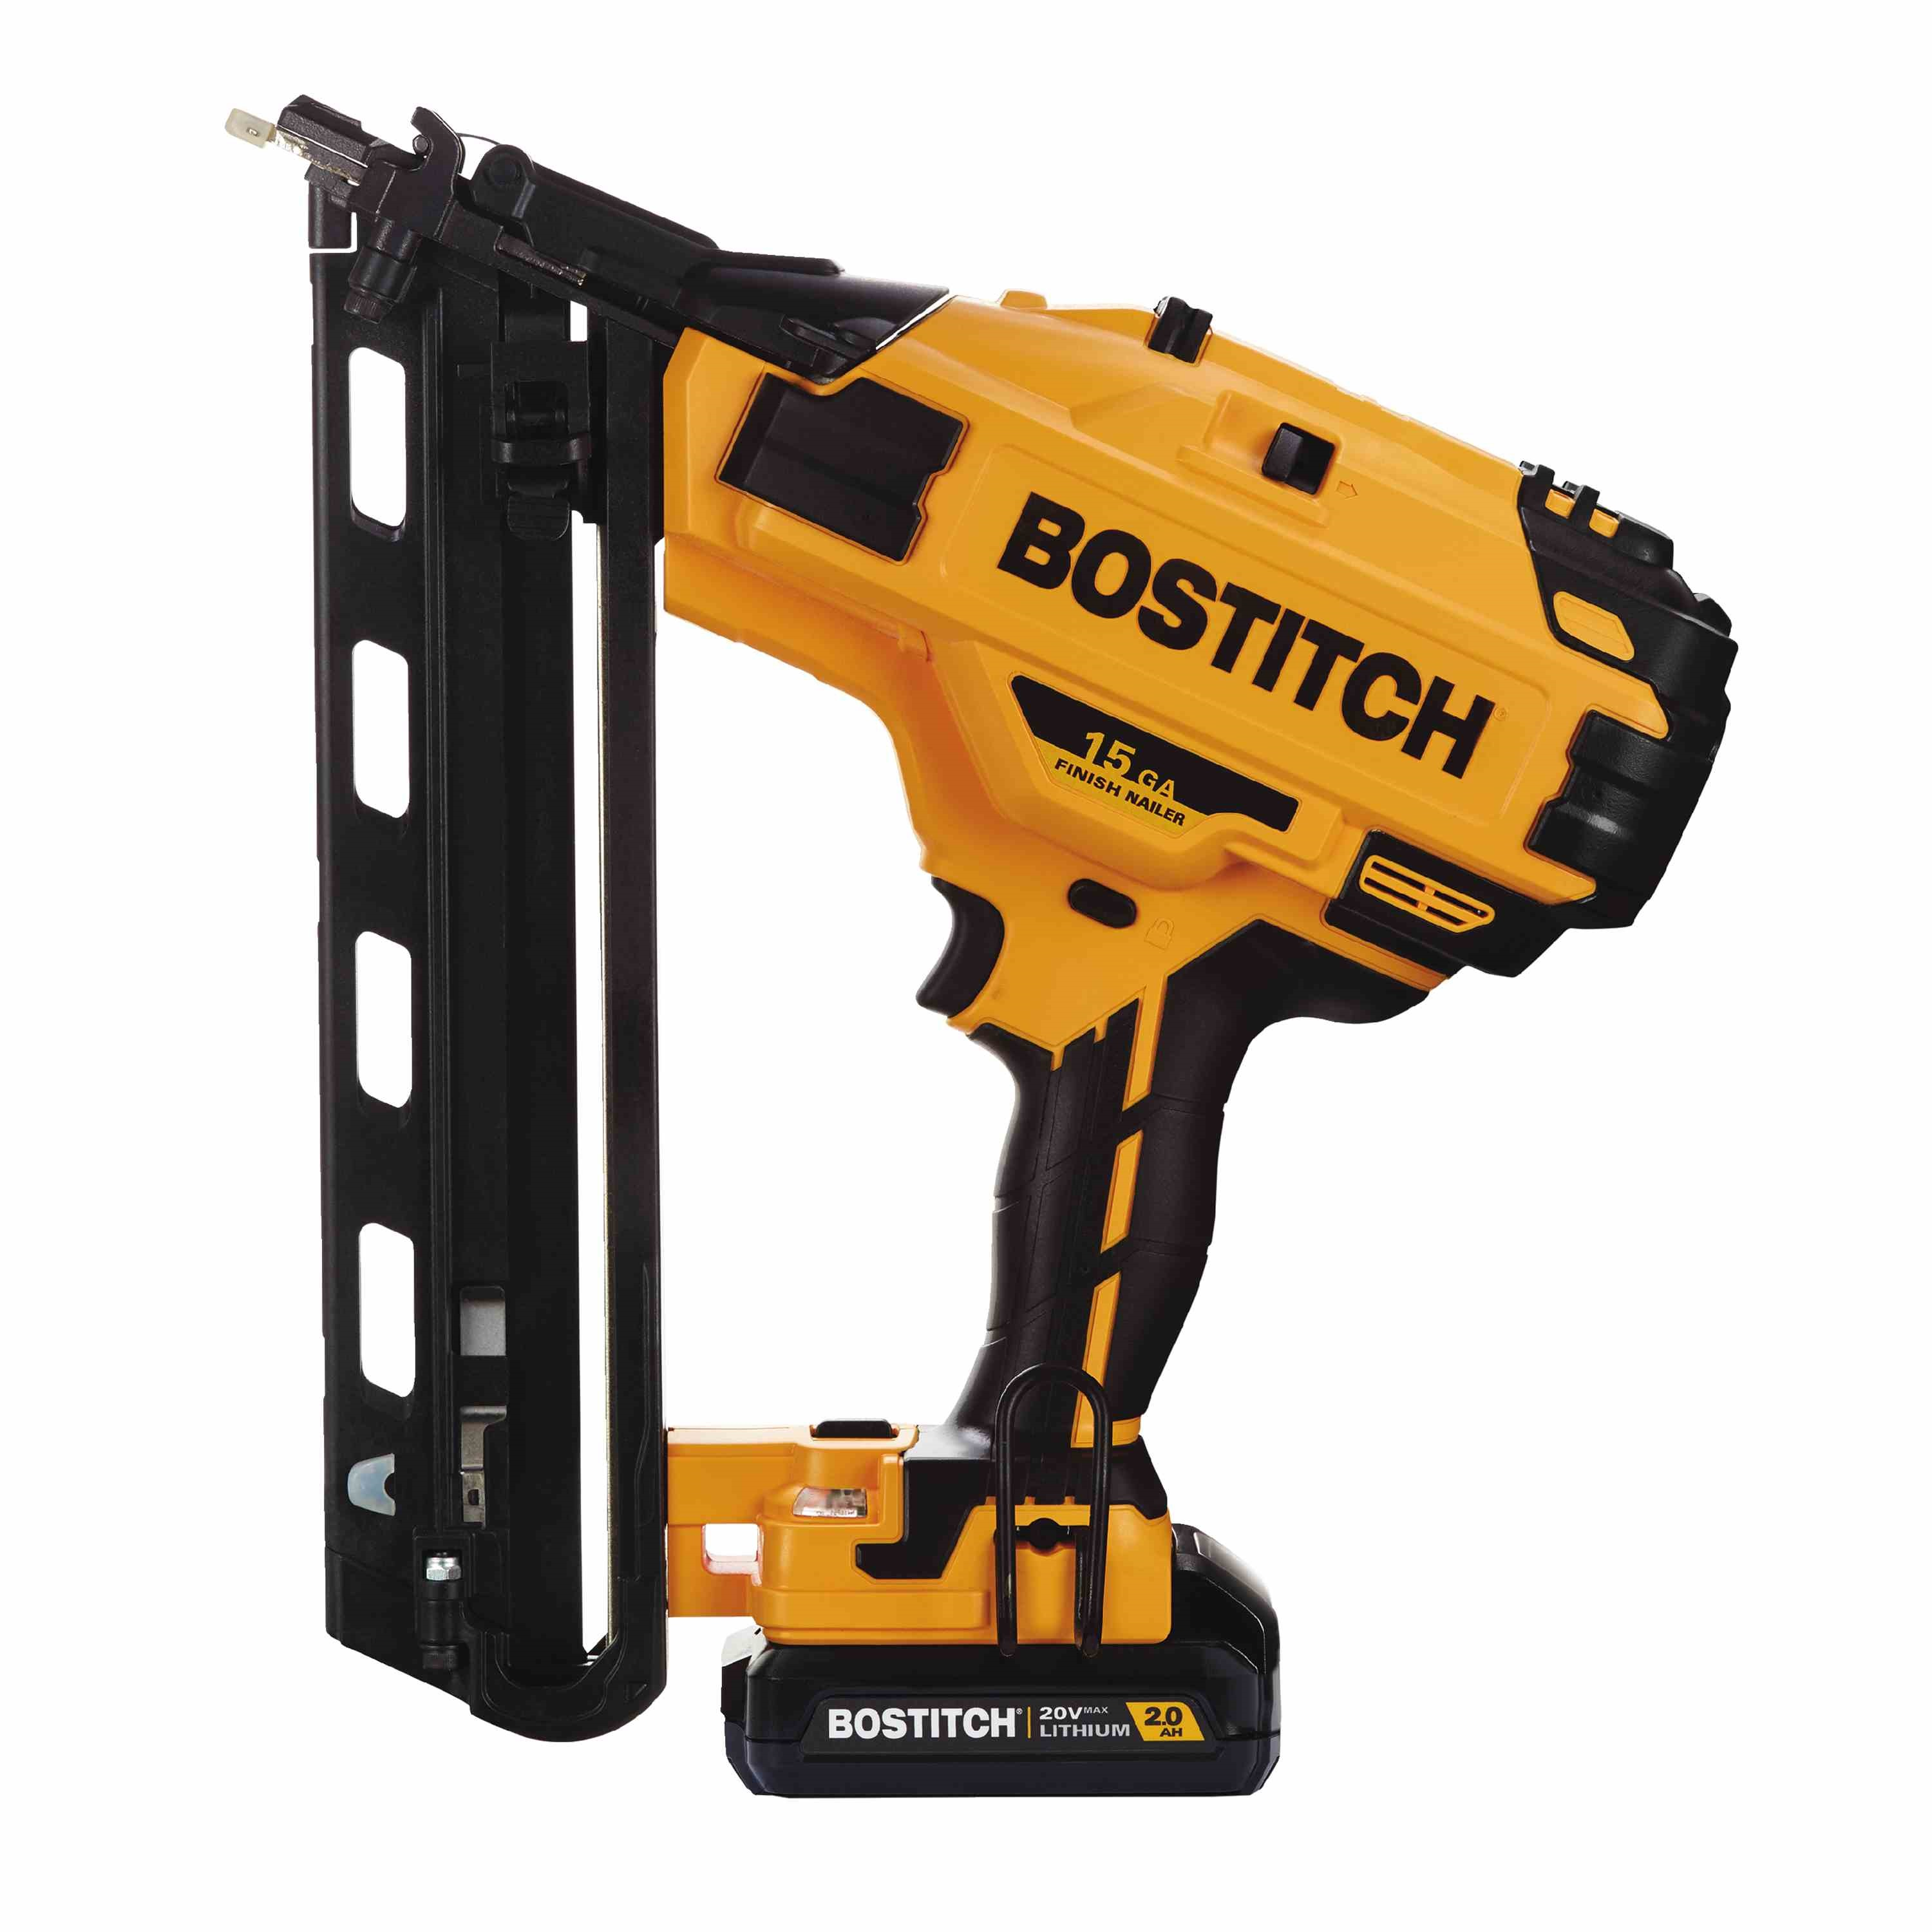 Bostitch - 20V MAX 15 GA FN Angled Finish Nailer Kit - BCN650D1